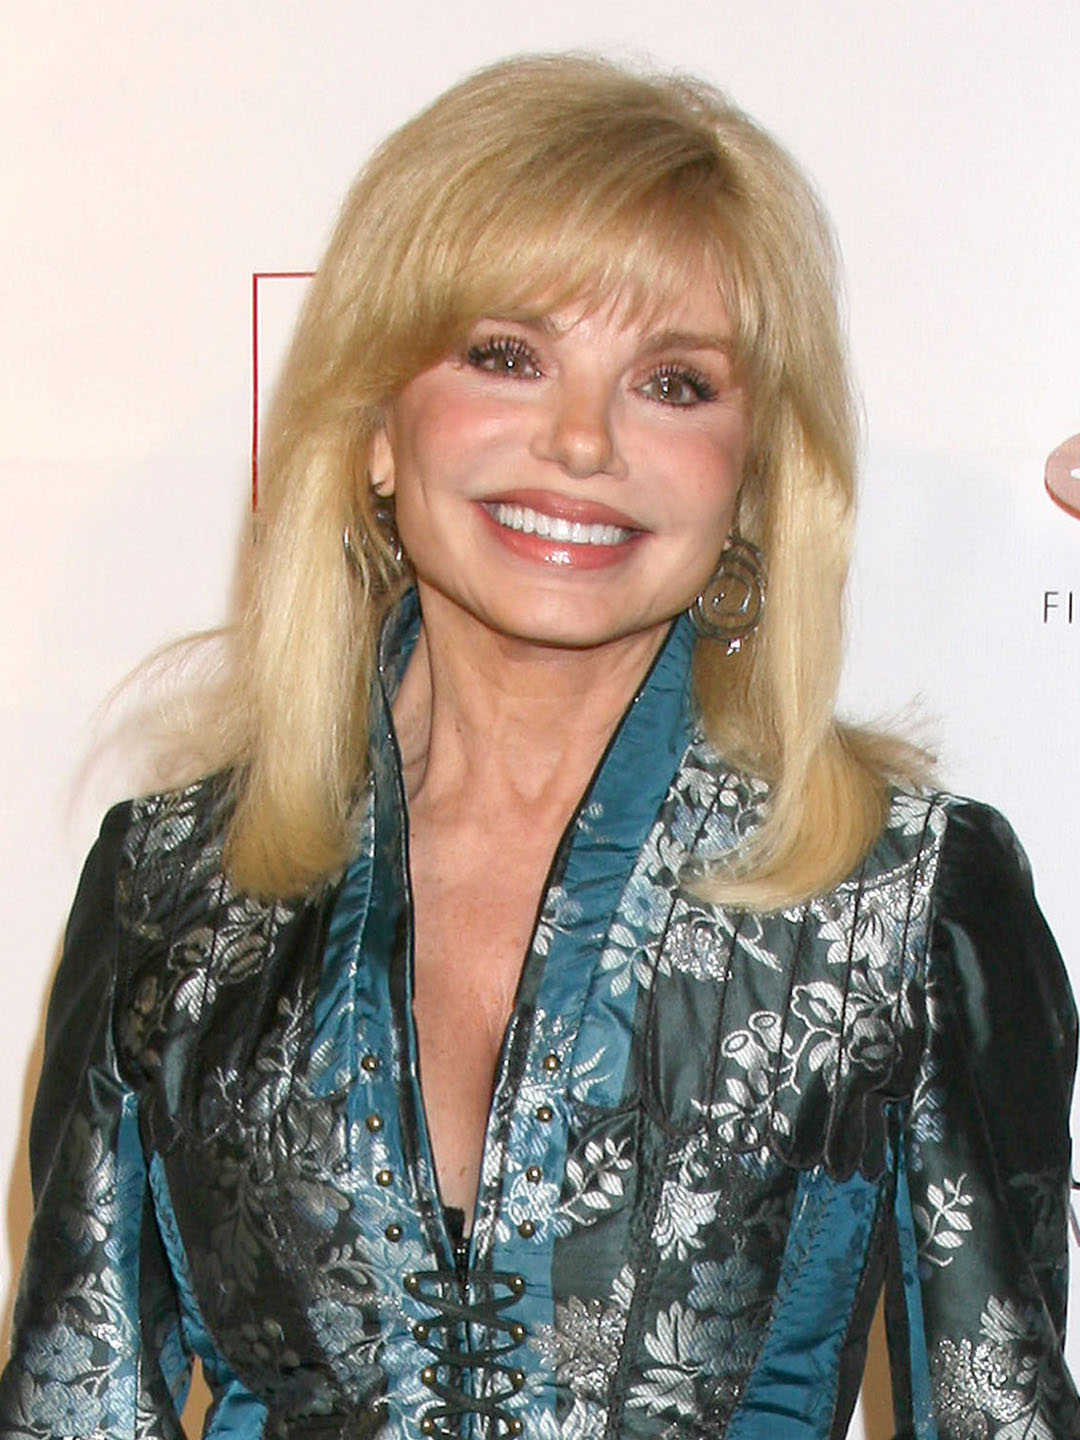 Loni Anderson nude (33 photos), Topless, Leaked, Twitter, legs 2018